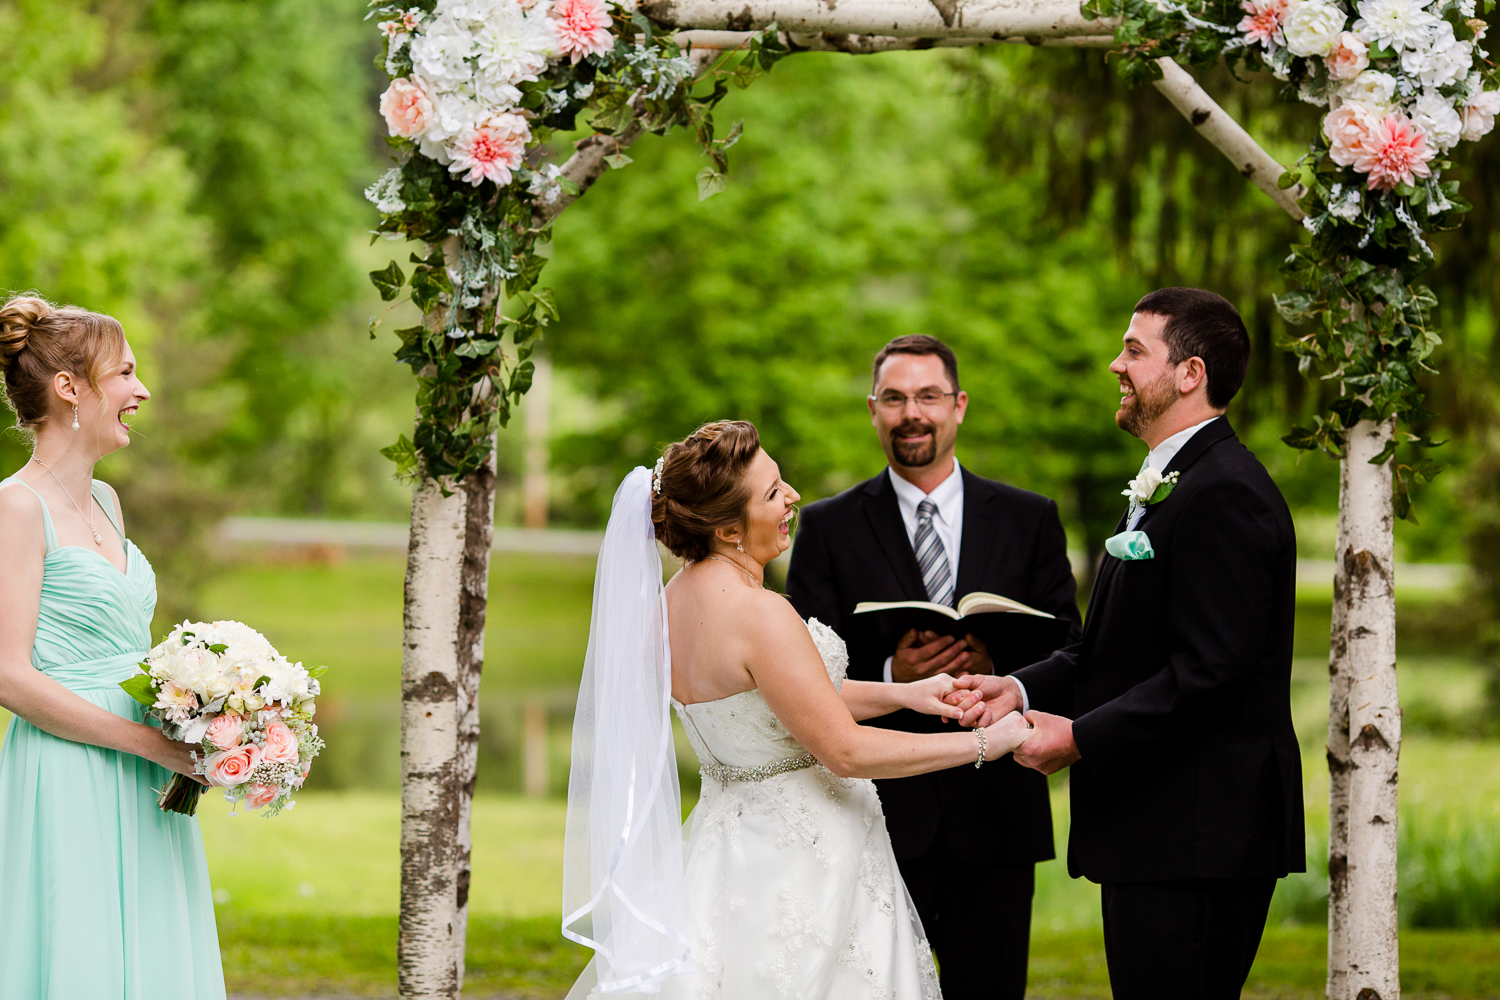 Bride and groom laugh during their wedding ceremony. They are under a birch tree arch. The maid of honor stands next to them laughing.